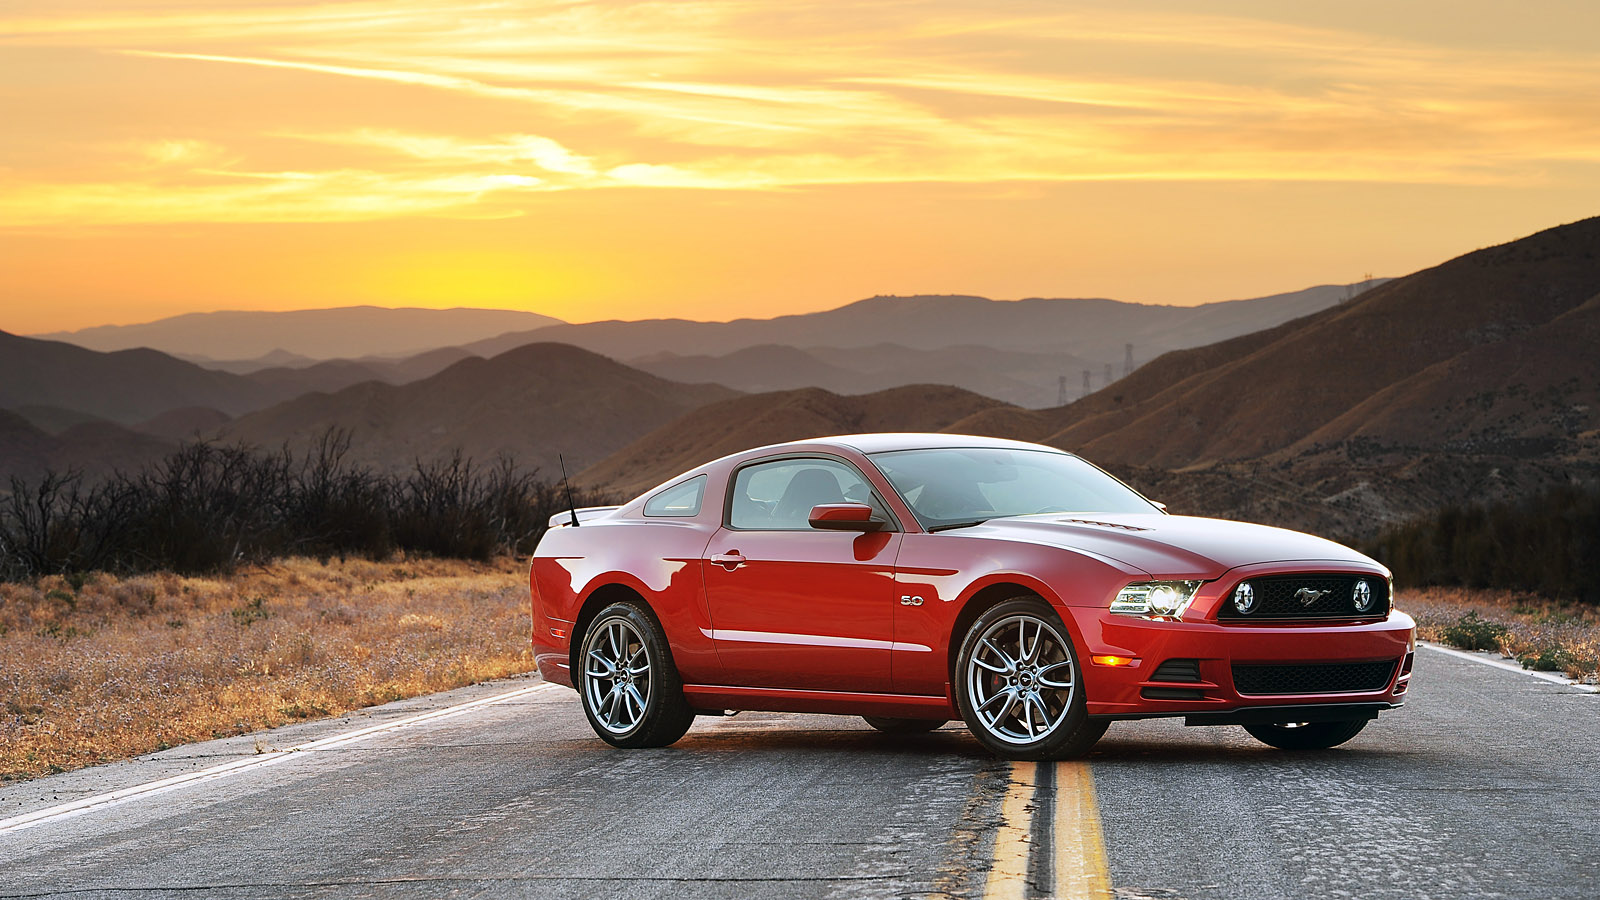 2013 Ford Mustang GT Desktop Wallpaper Mustangs Daily 1600x900